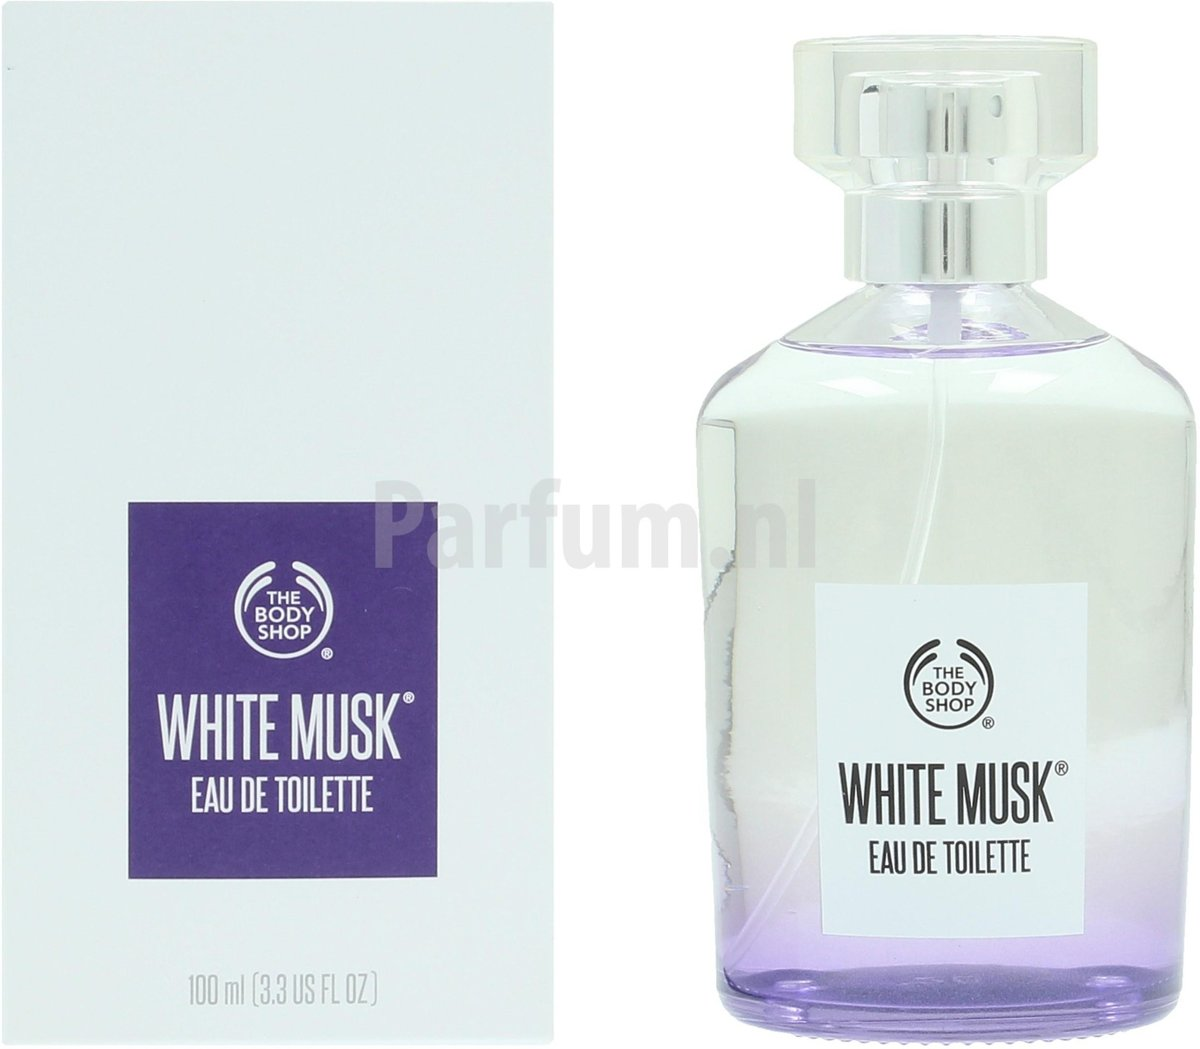 The Body Shop White Musk Eau de toilette spray 100 ml